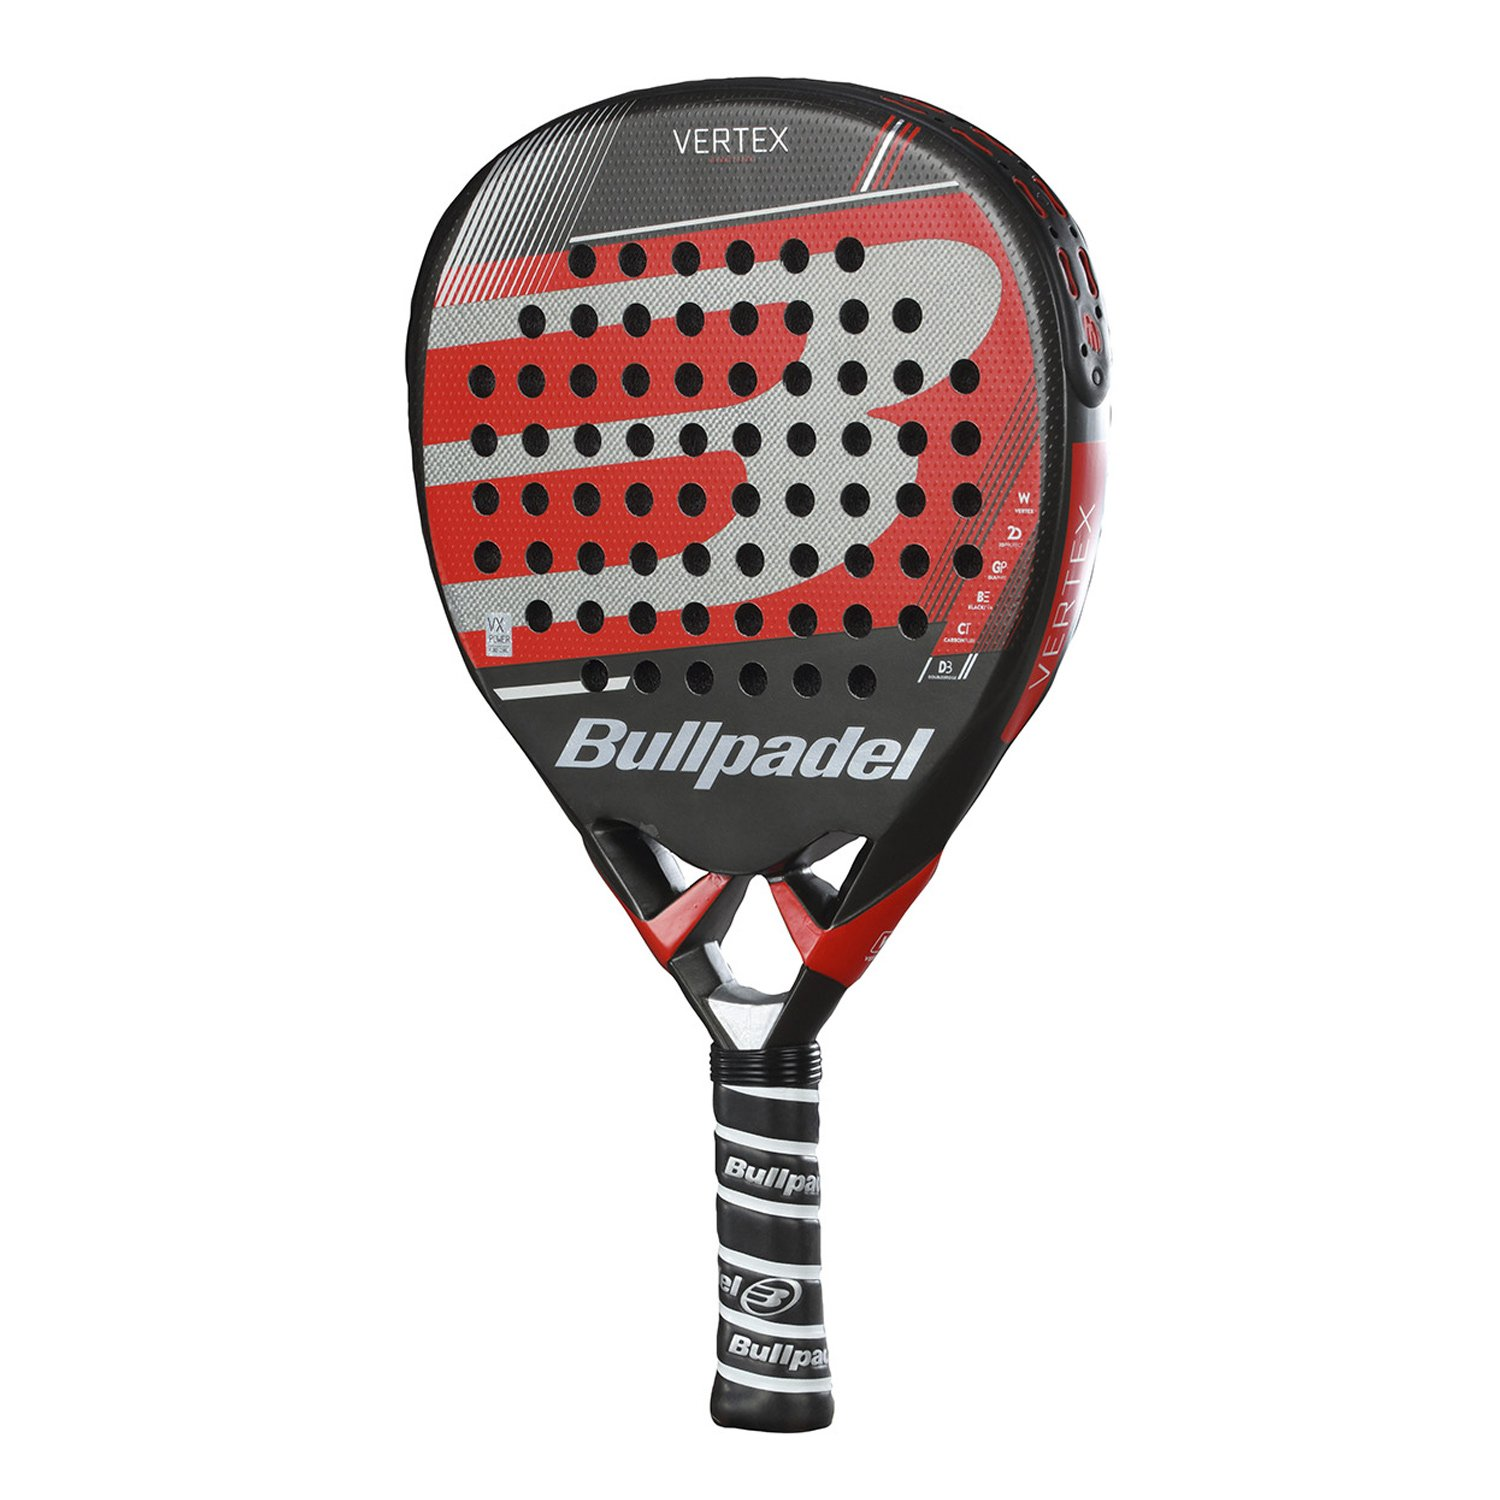 BULLPADEL Vertex 18-370-375: Amazon.es: Deportes y aire libre